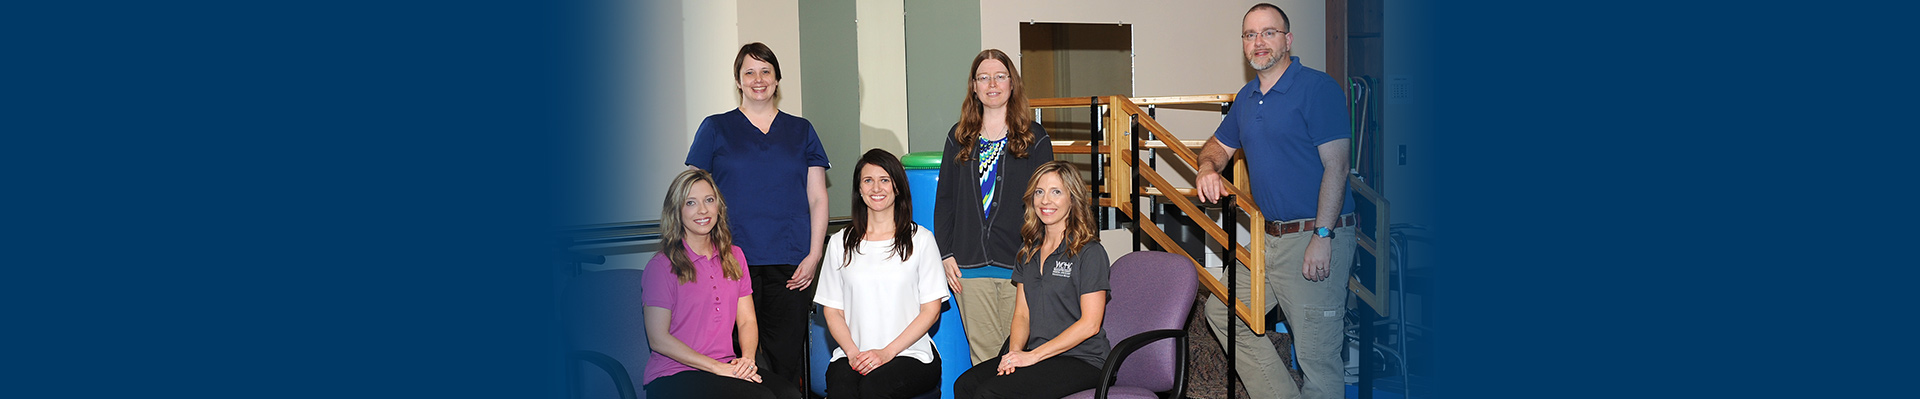 rehab services staff